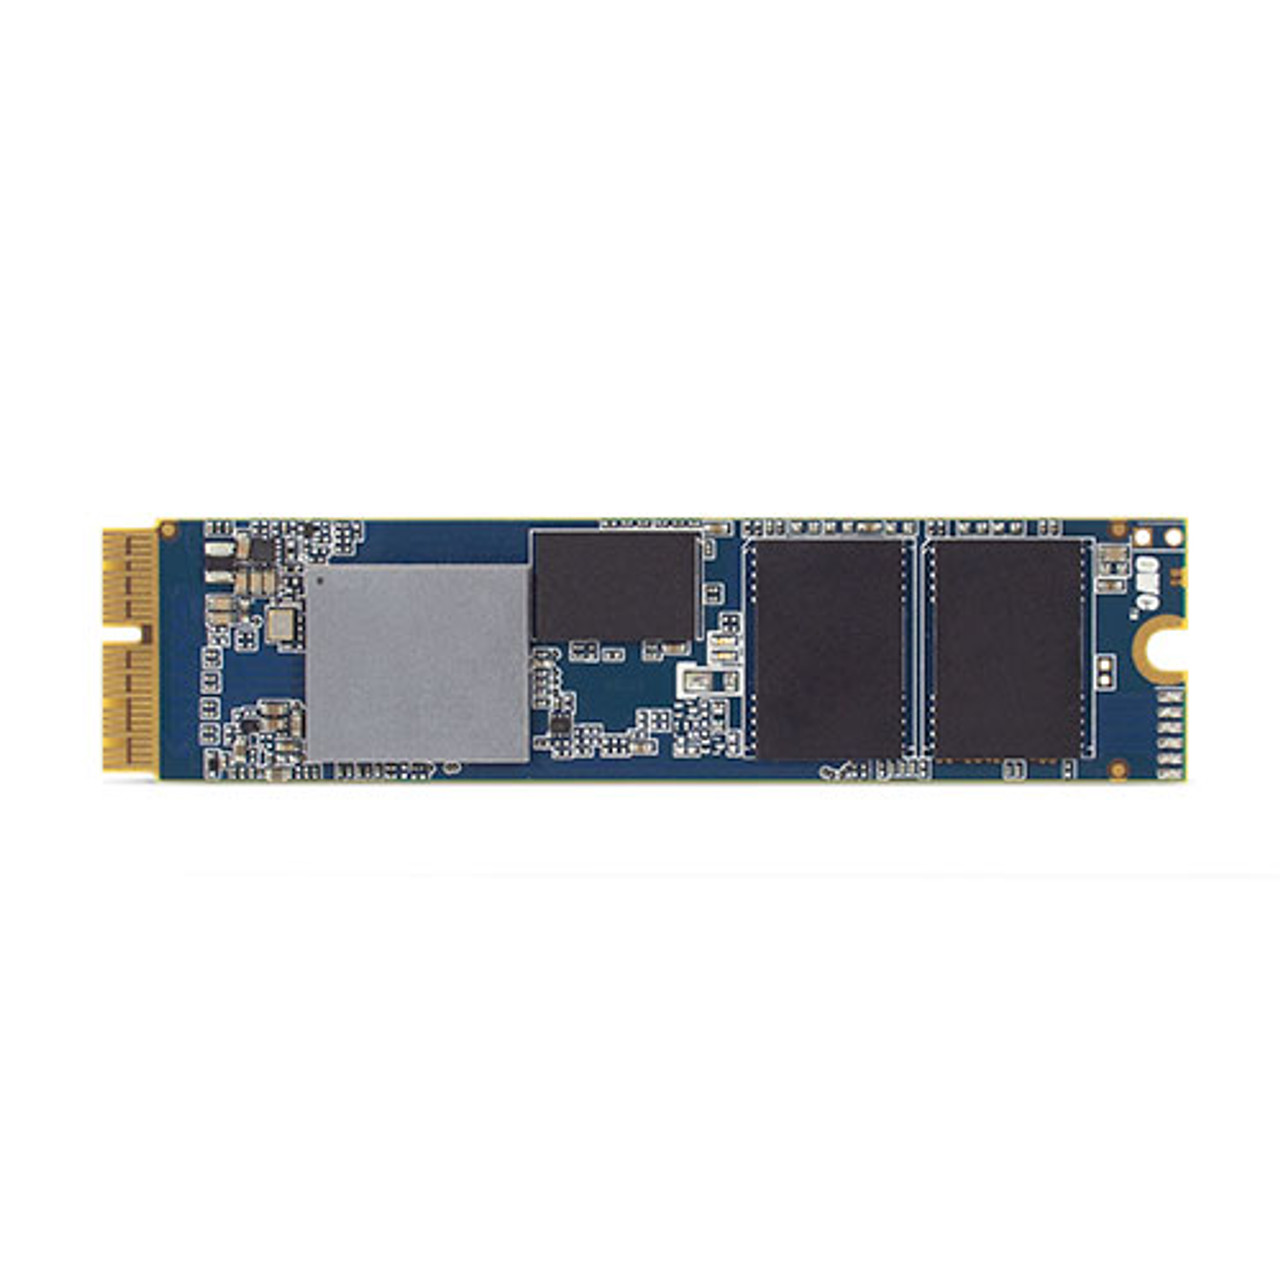 OWC 2TB Aura Pro X2 SSD upgrade with tools and Envoy SSD enclosure (for MacBook Pro w/ Retina Display Late 2013 - Mid 2015 and MacBook Air Mid 2013 - Mid 2017)